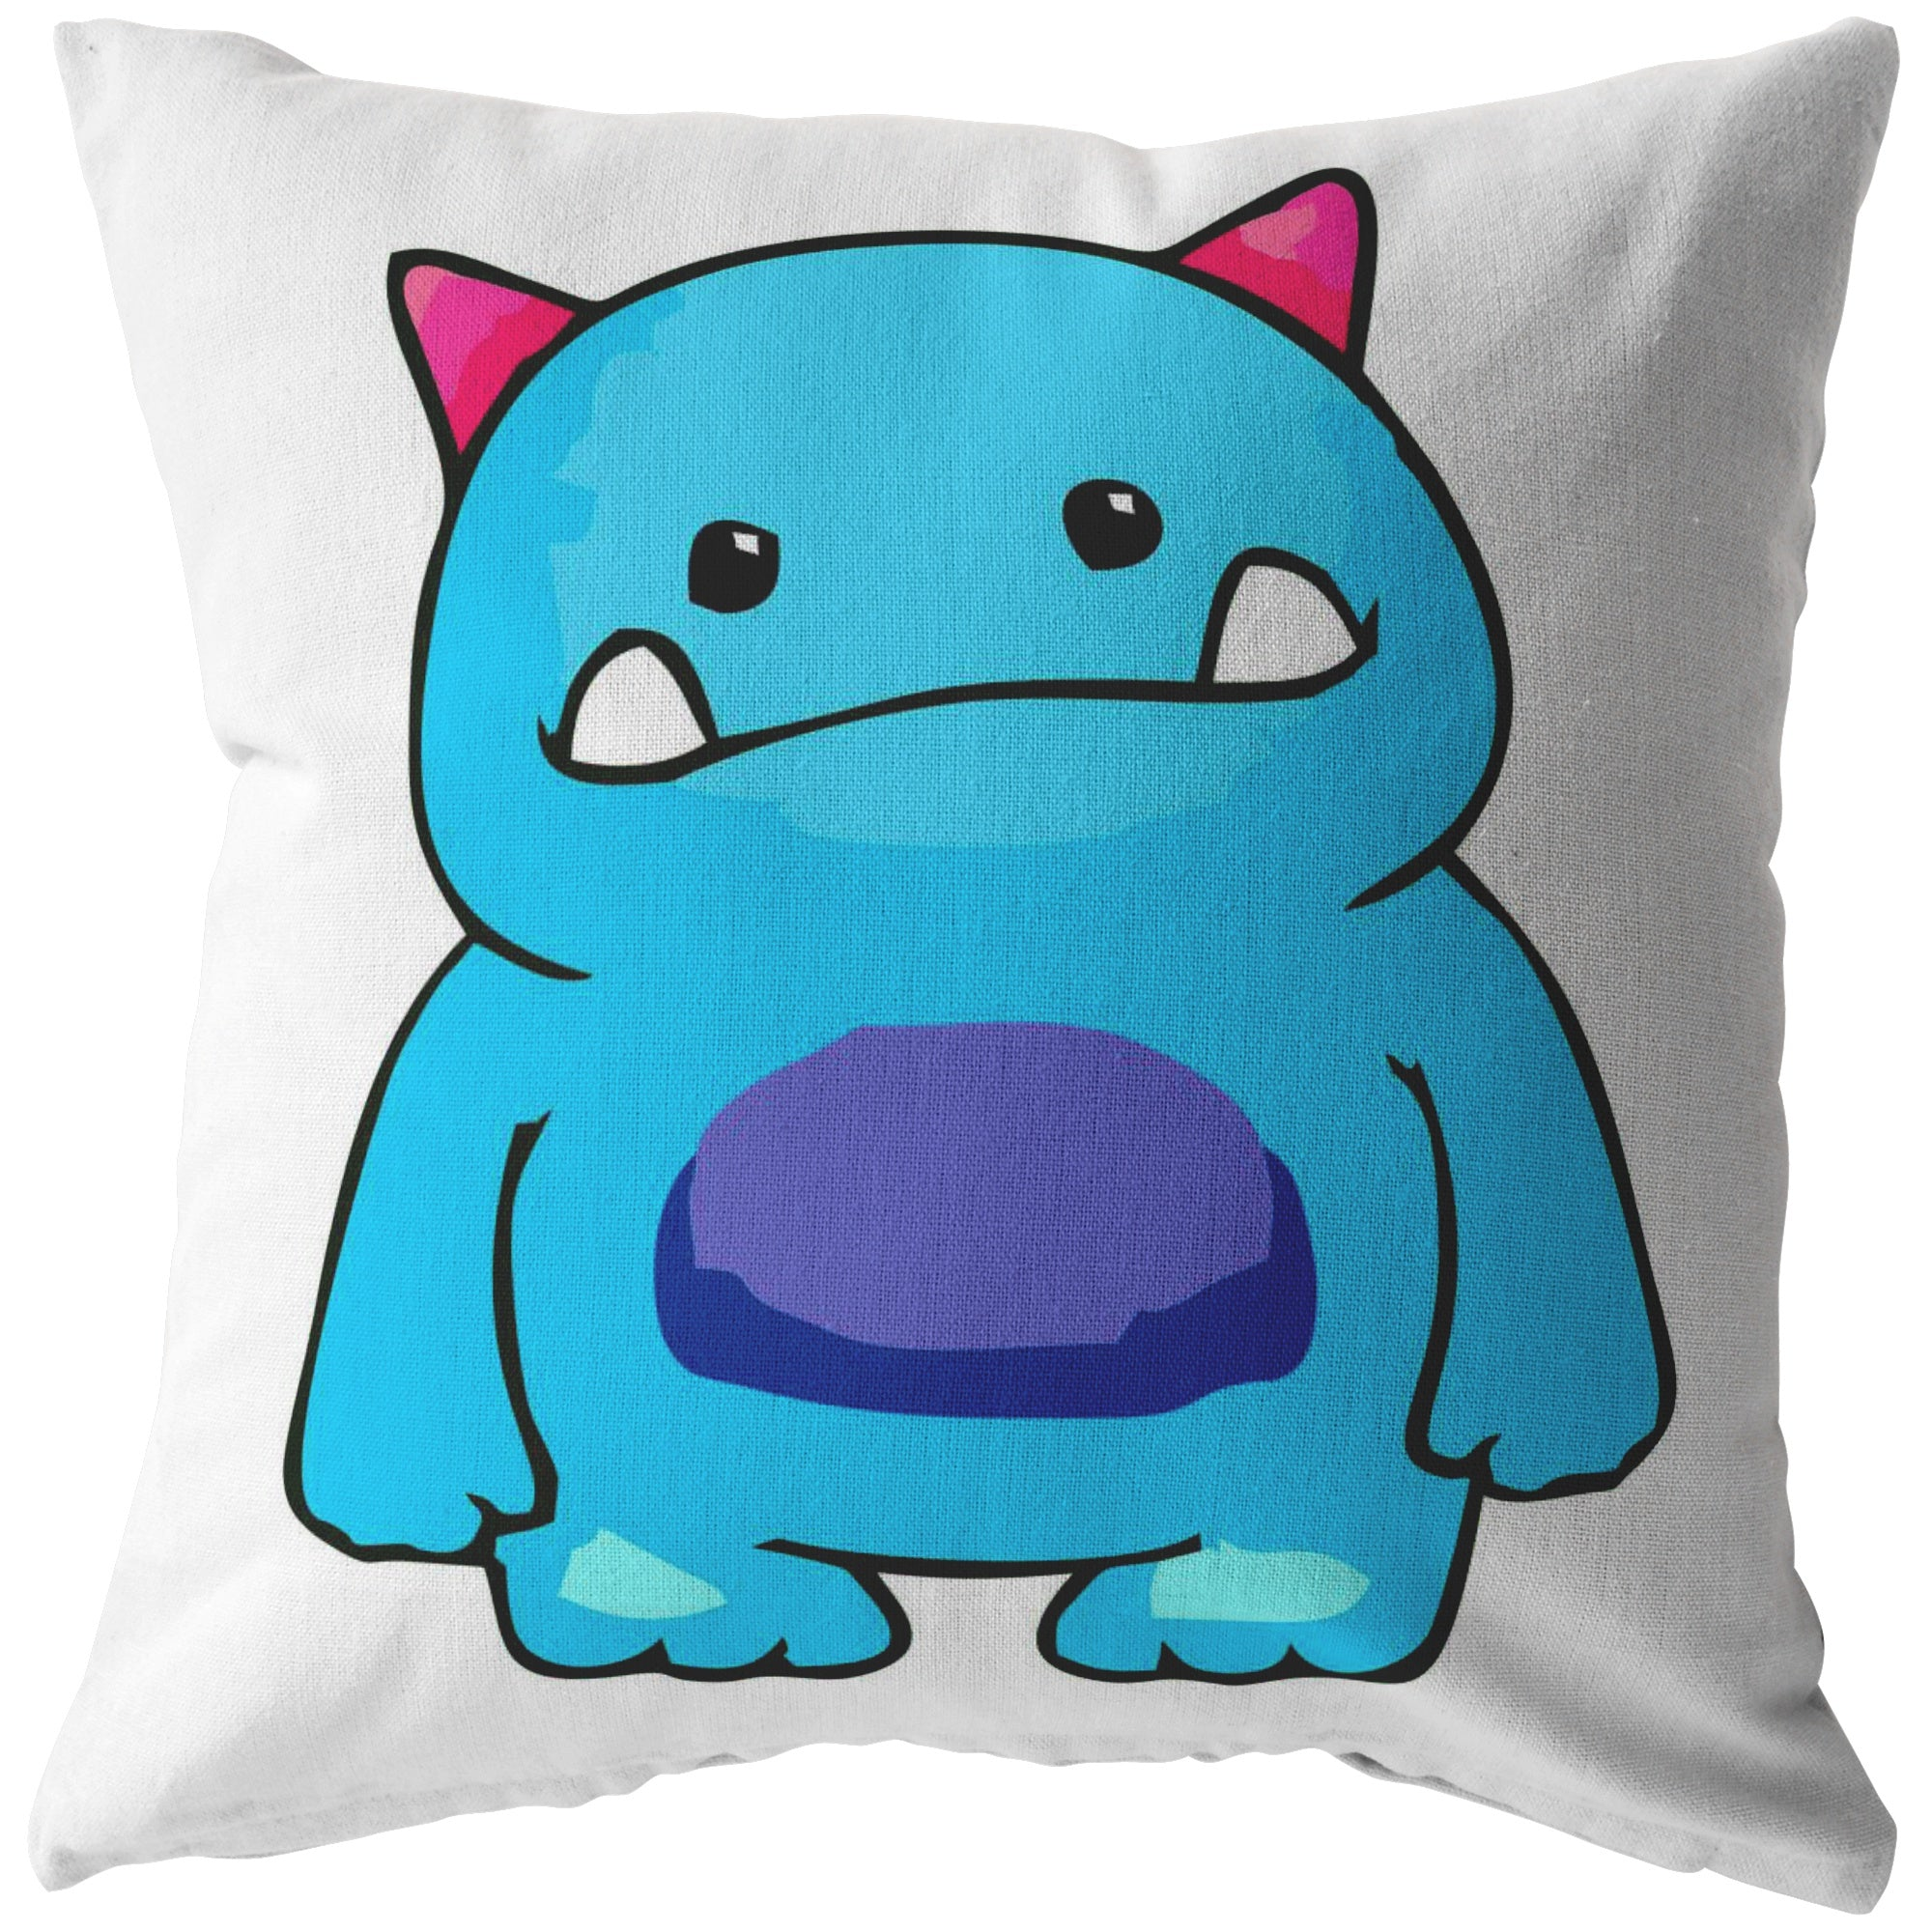 Addisons Disease Monster Pillow